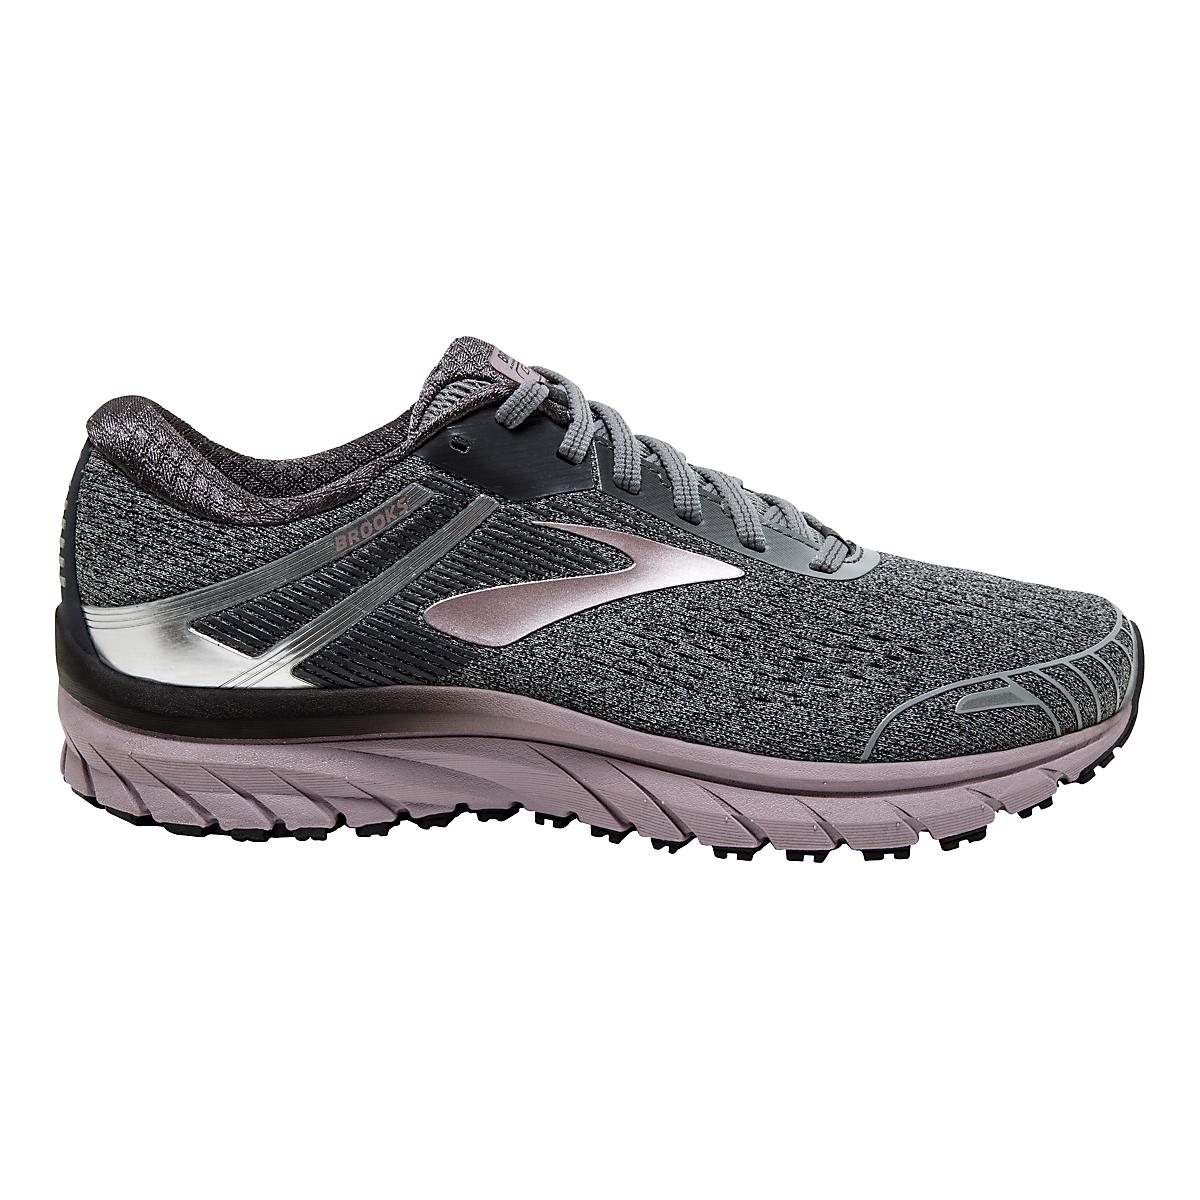 6a5288c3d0170 Brooks Adrenaline GTS 18 Women s Running Shoes for Sale